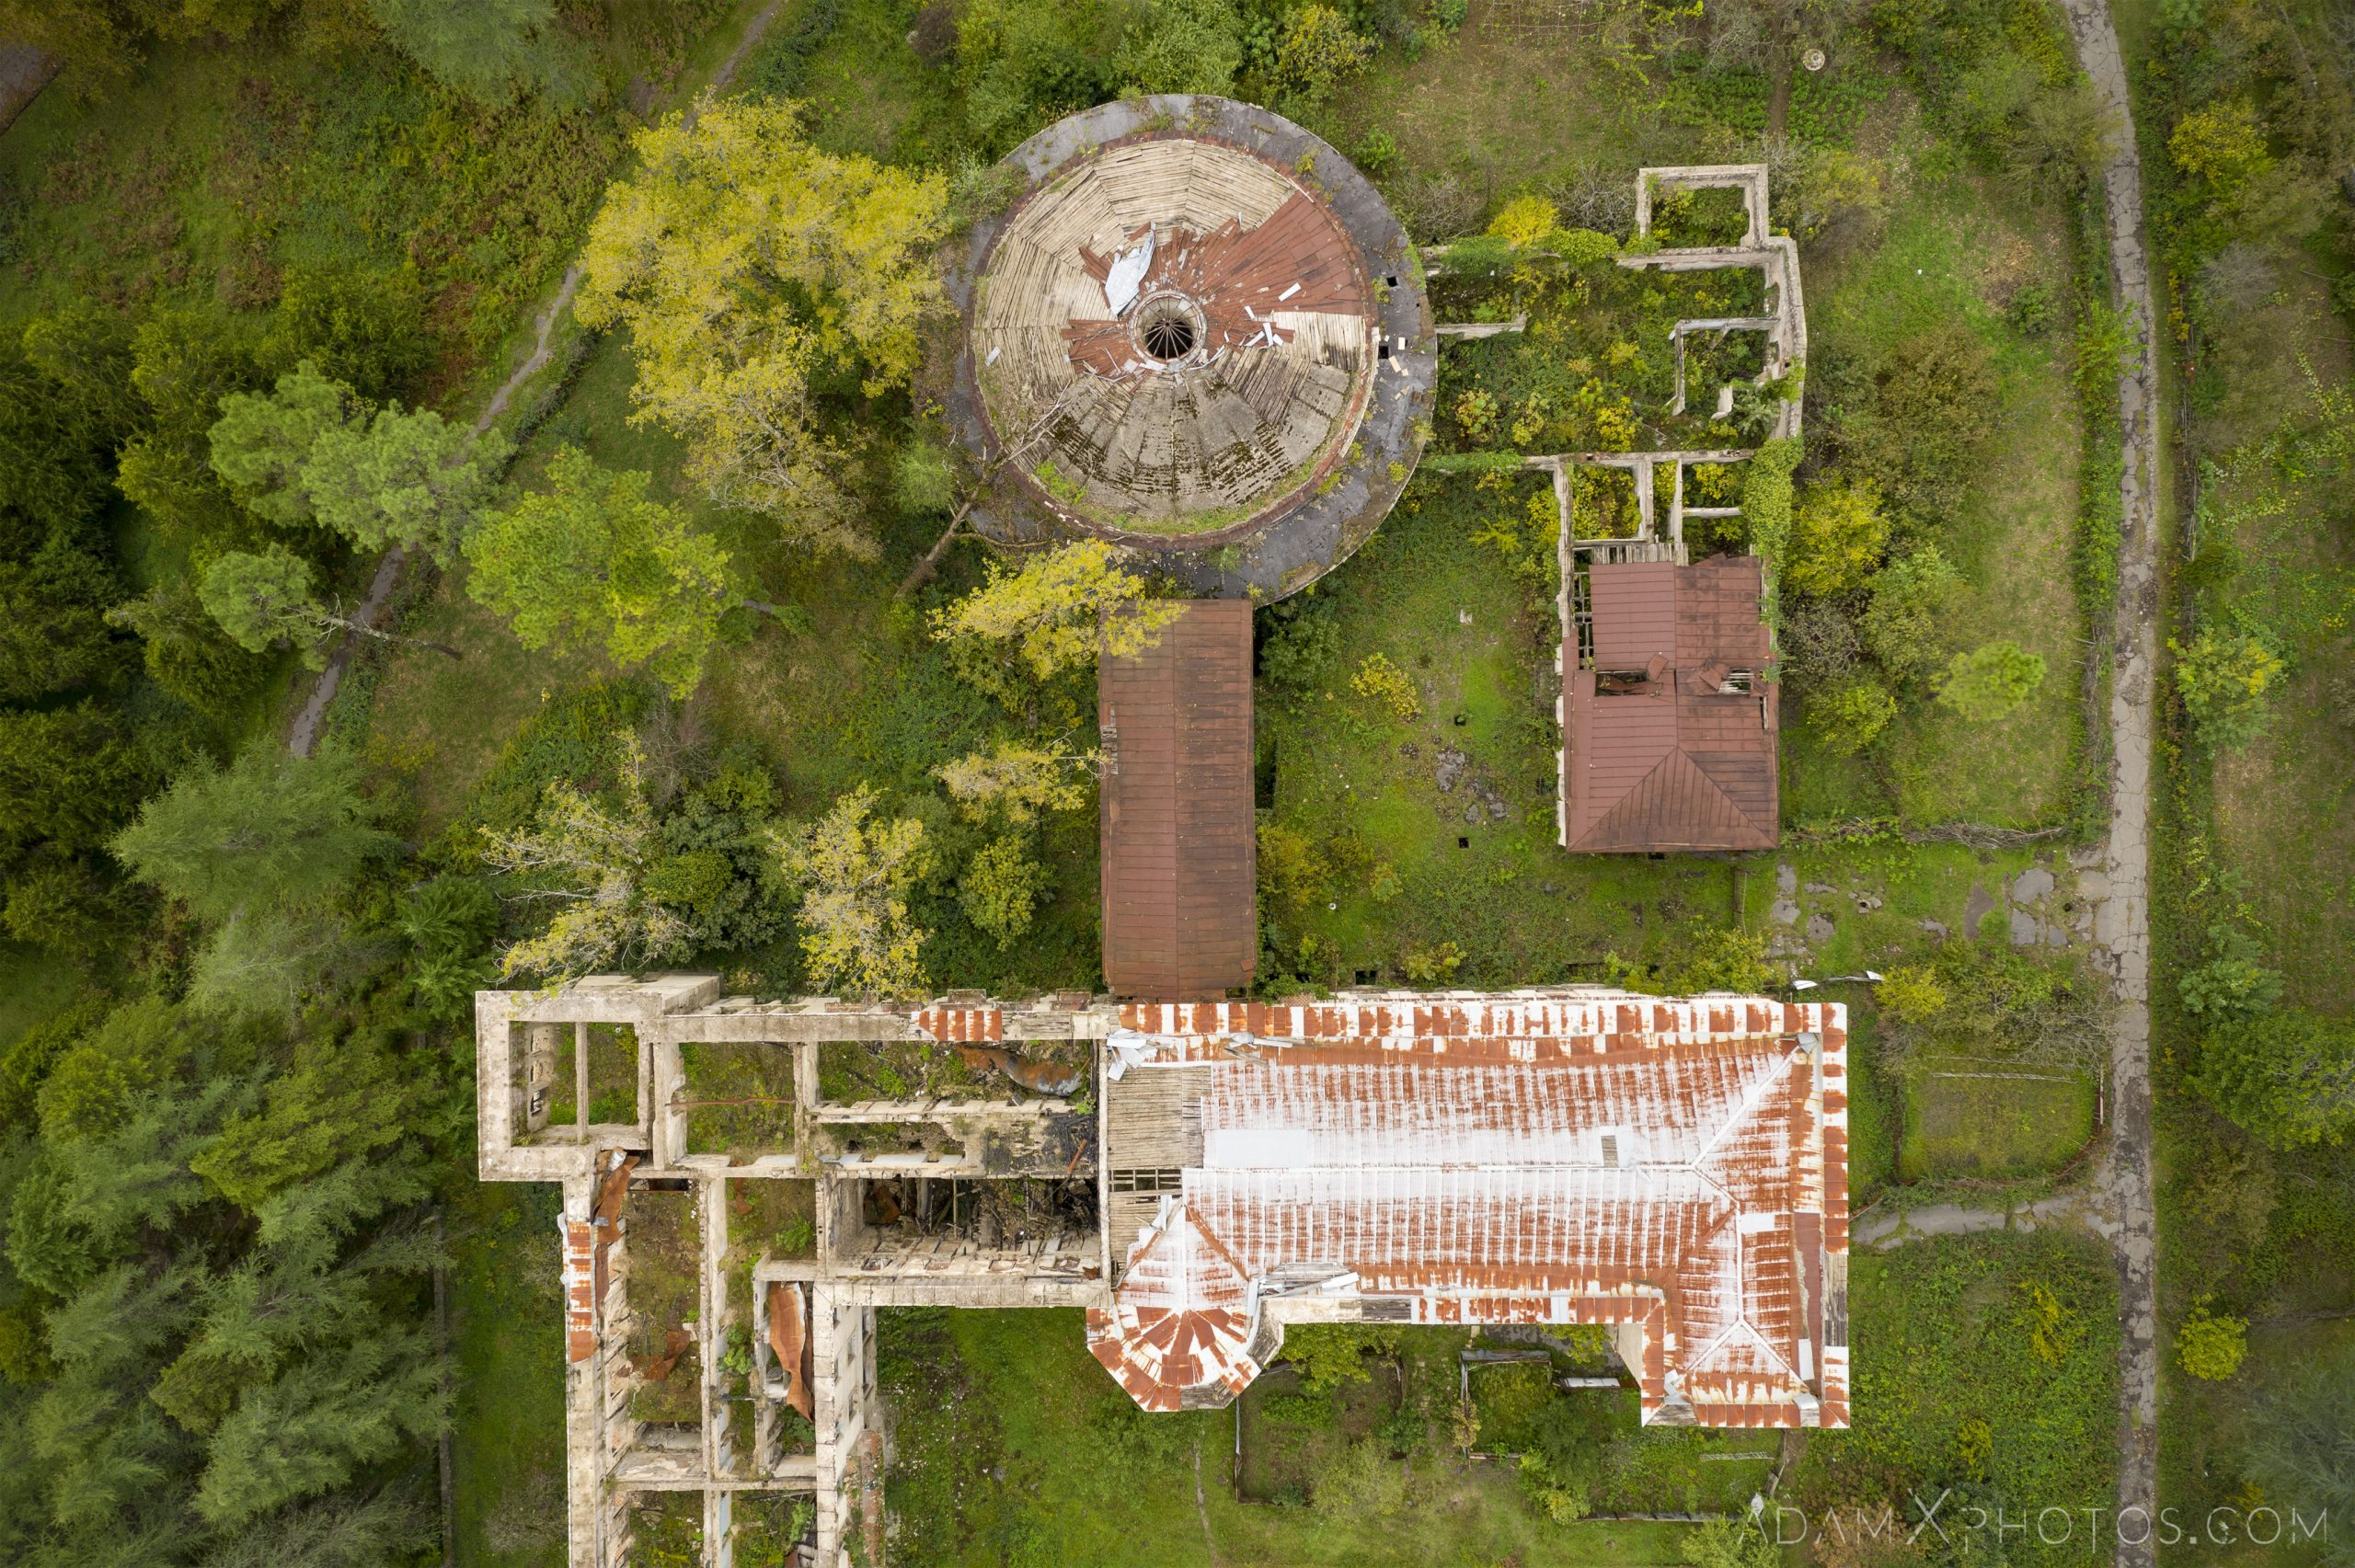 Bath House Drone DJI Mavic Pro 2 aerial above looking down Sanatorium Imereti Tskaltubo Georgia Soviet era Adam X Urbex Urban Exploration 2018 Abandoned Access History decay ruins lost forgotten derelict location creepy haunting eerie security